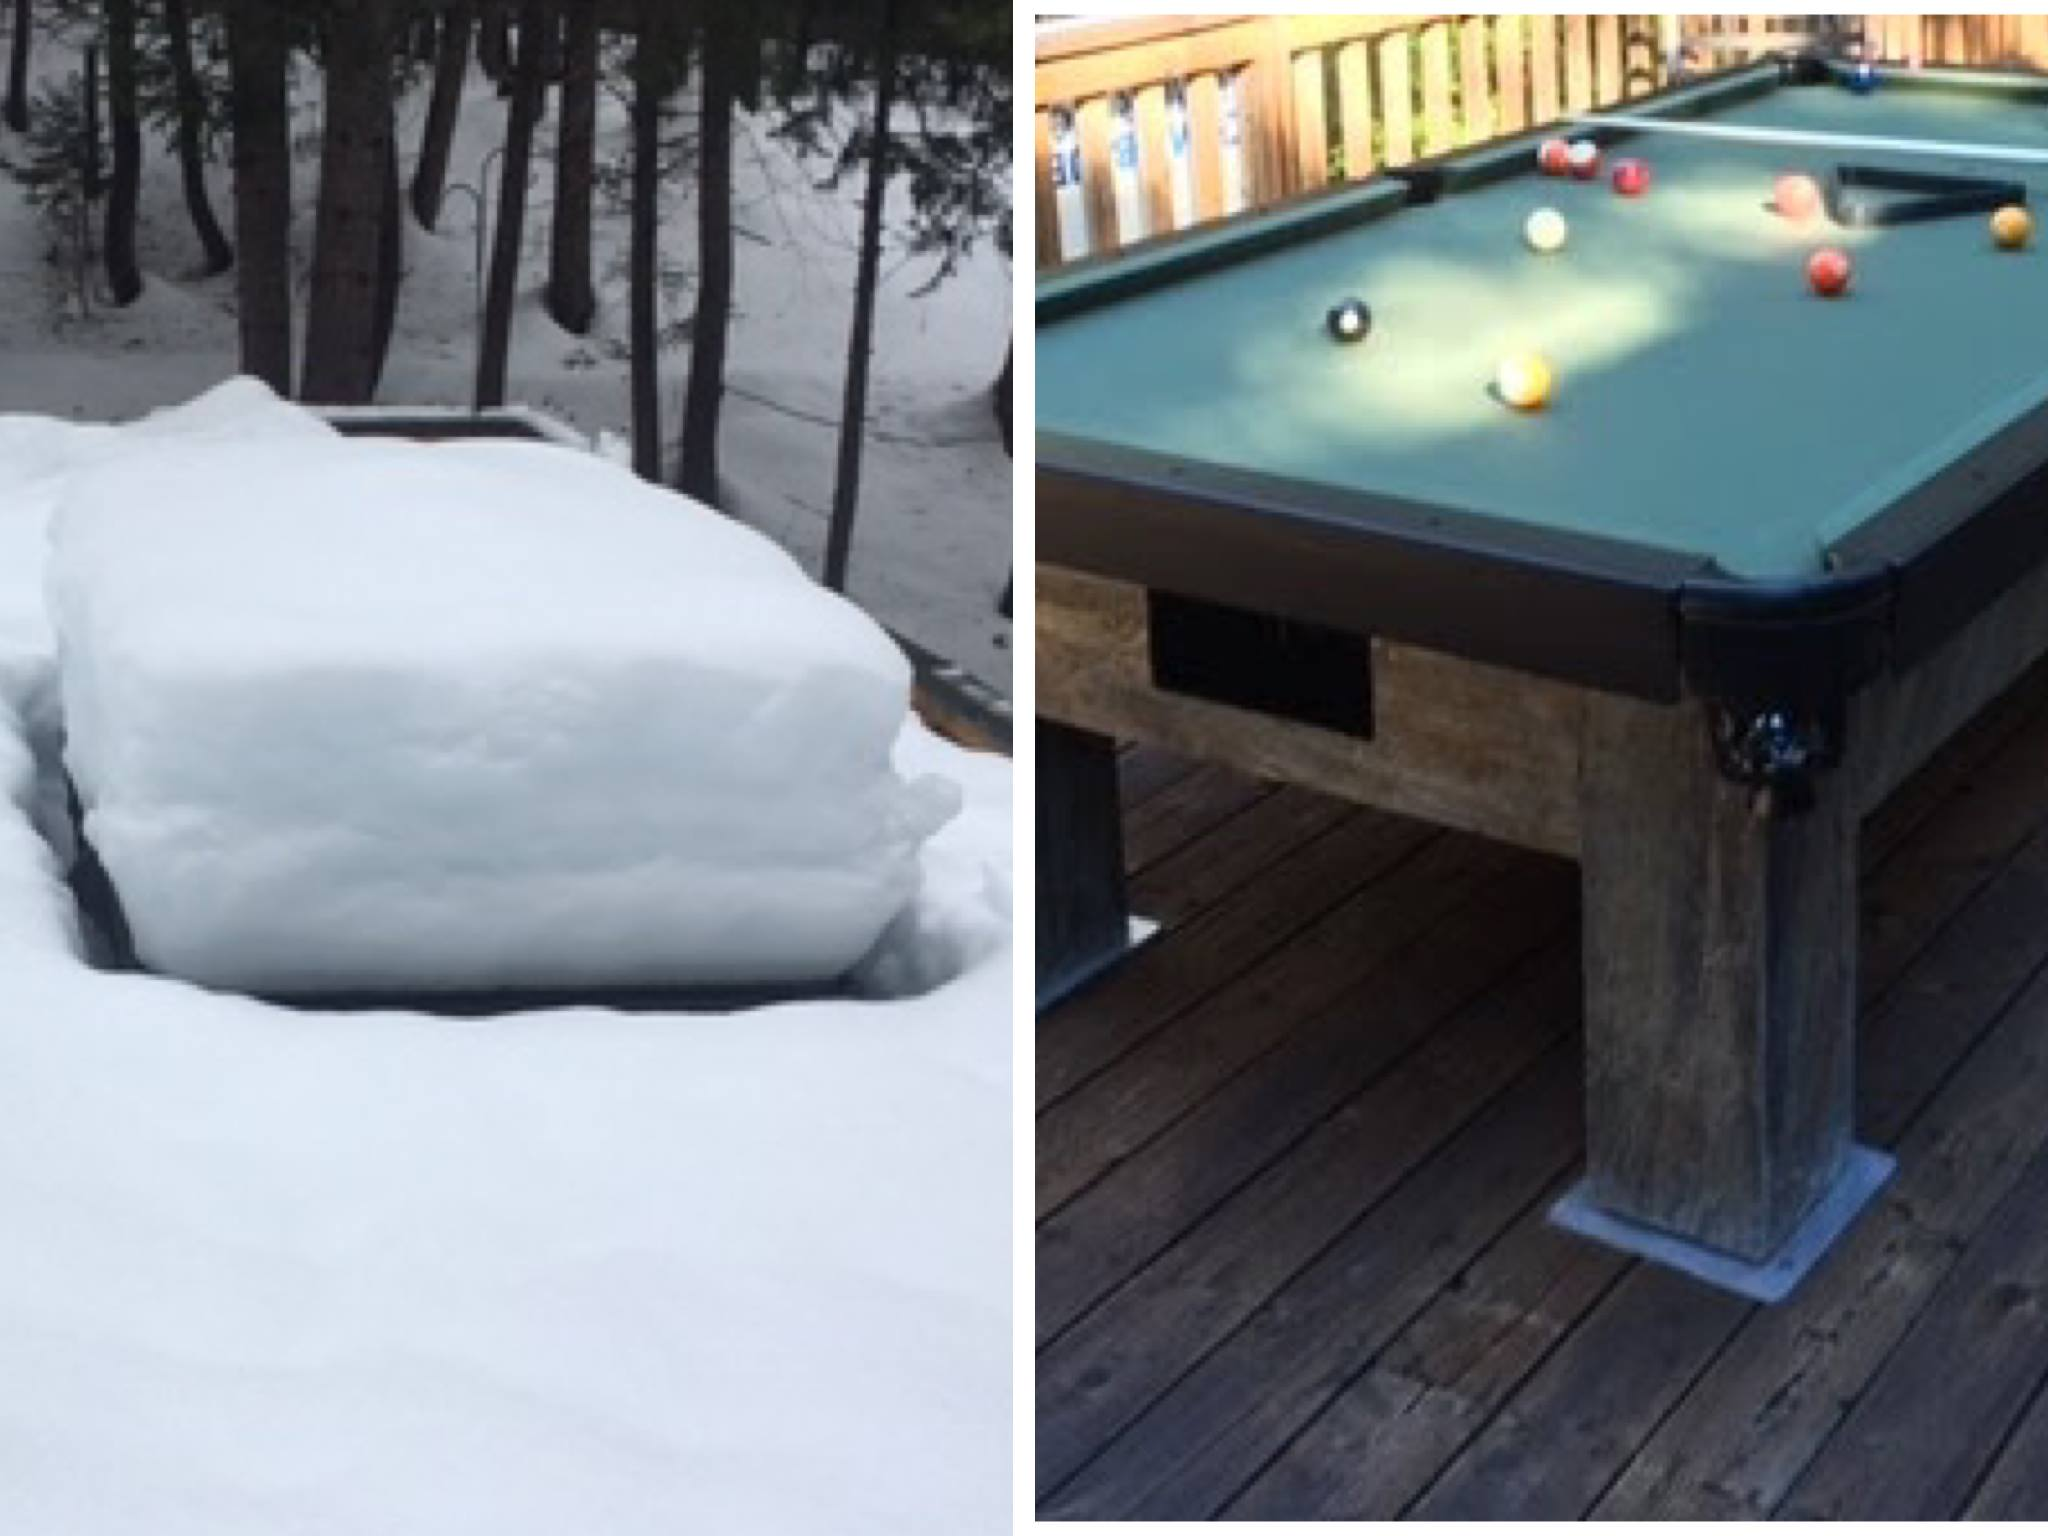 Artisan custom outdoor pool table with snow versus without snow showing how our tables withstand the elements